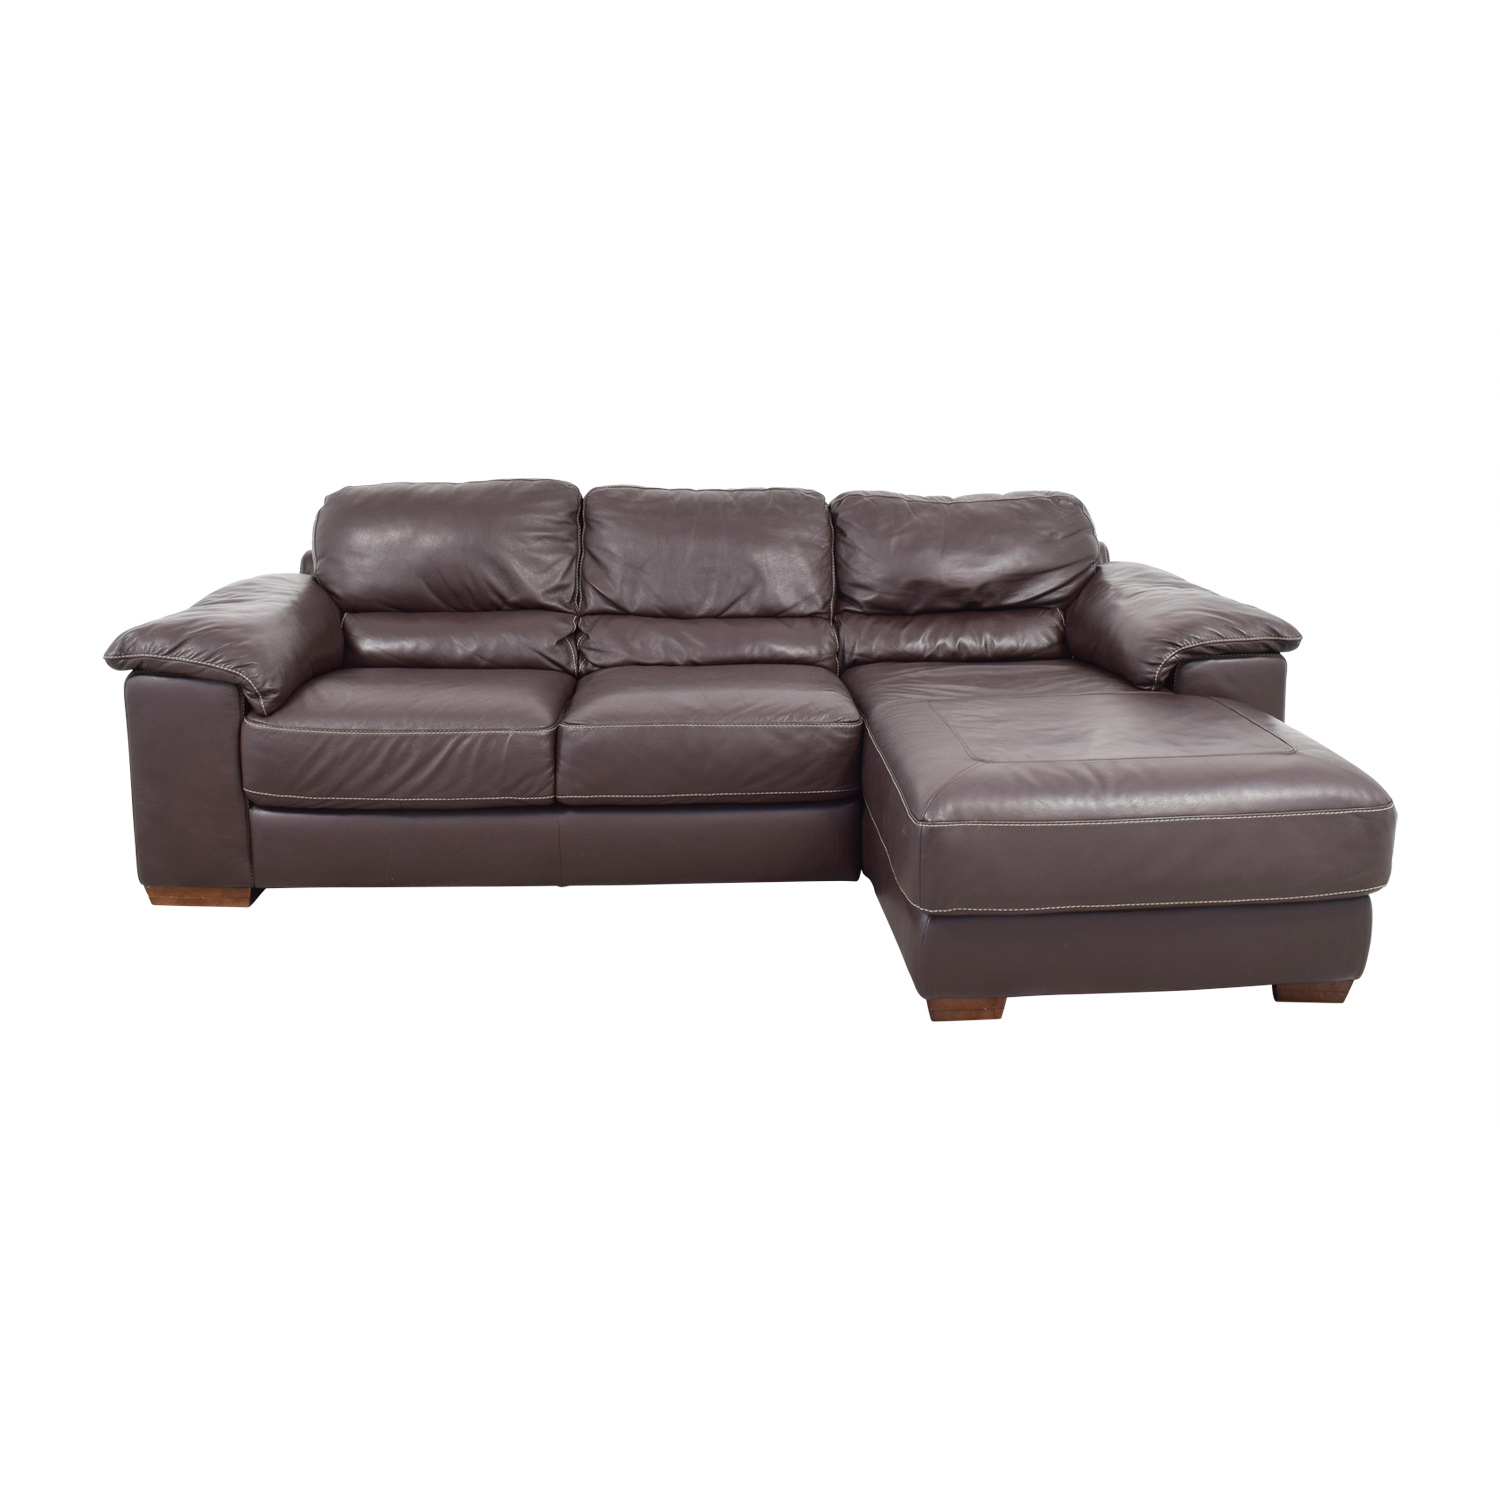 shop Raymour & Flanagan Raymour & Flanagan Cindy Crawford Brown Italian Leather Chaise Sectional online